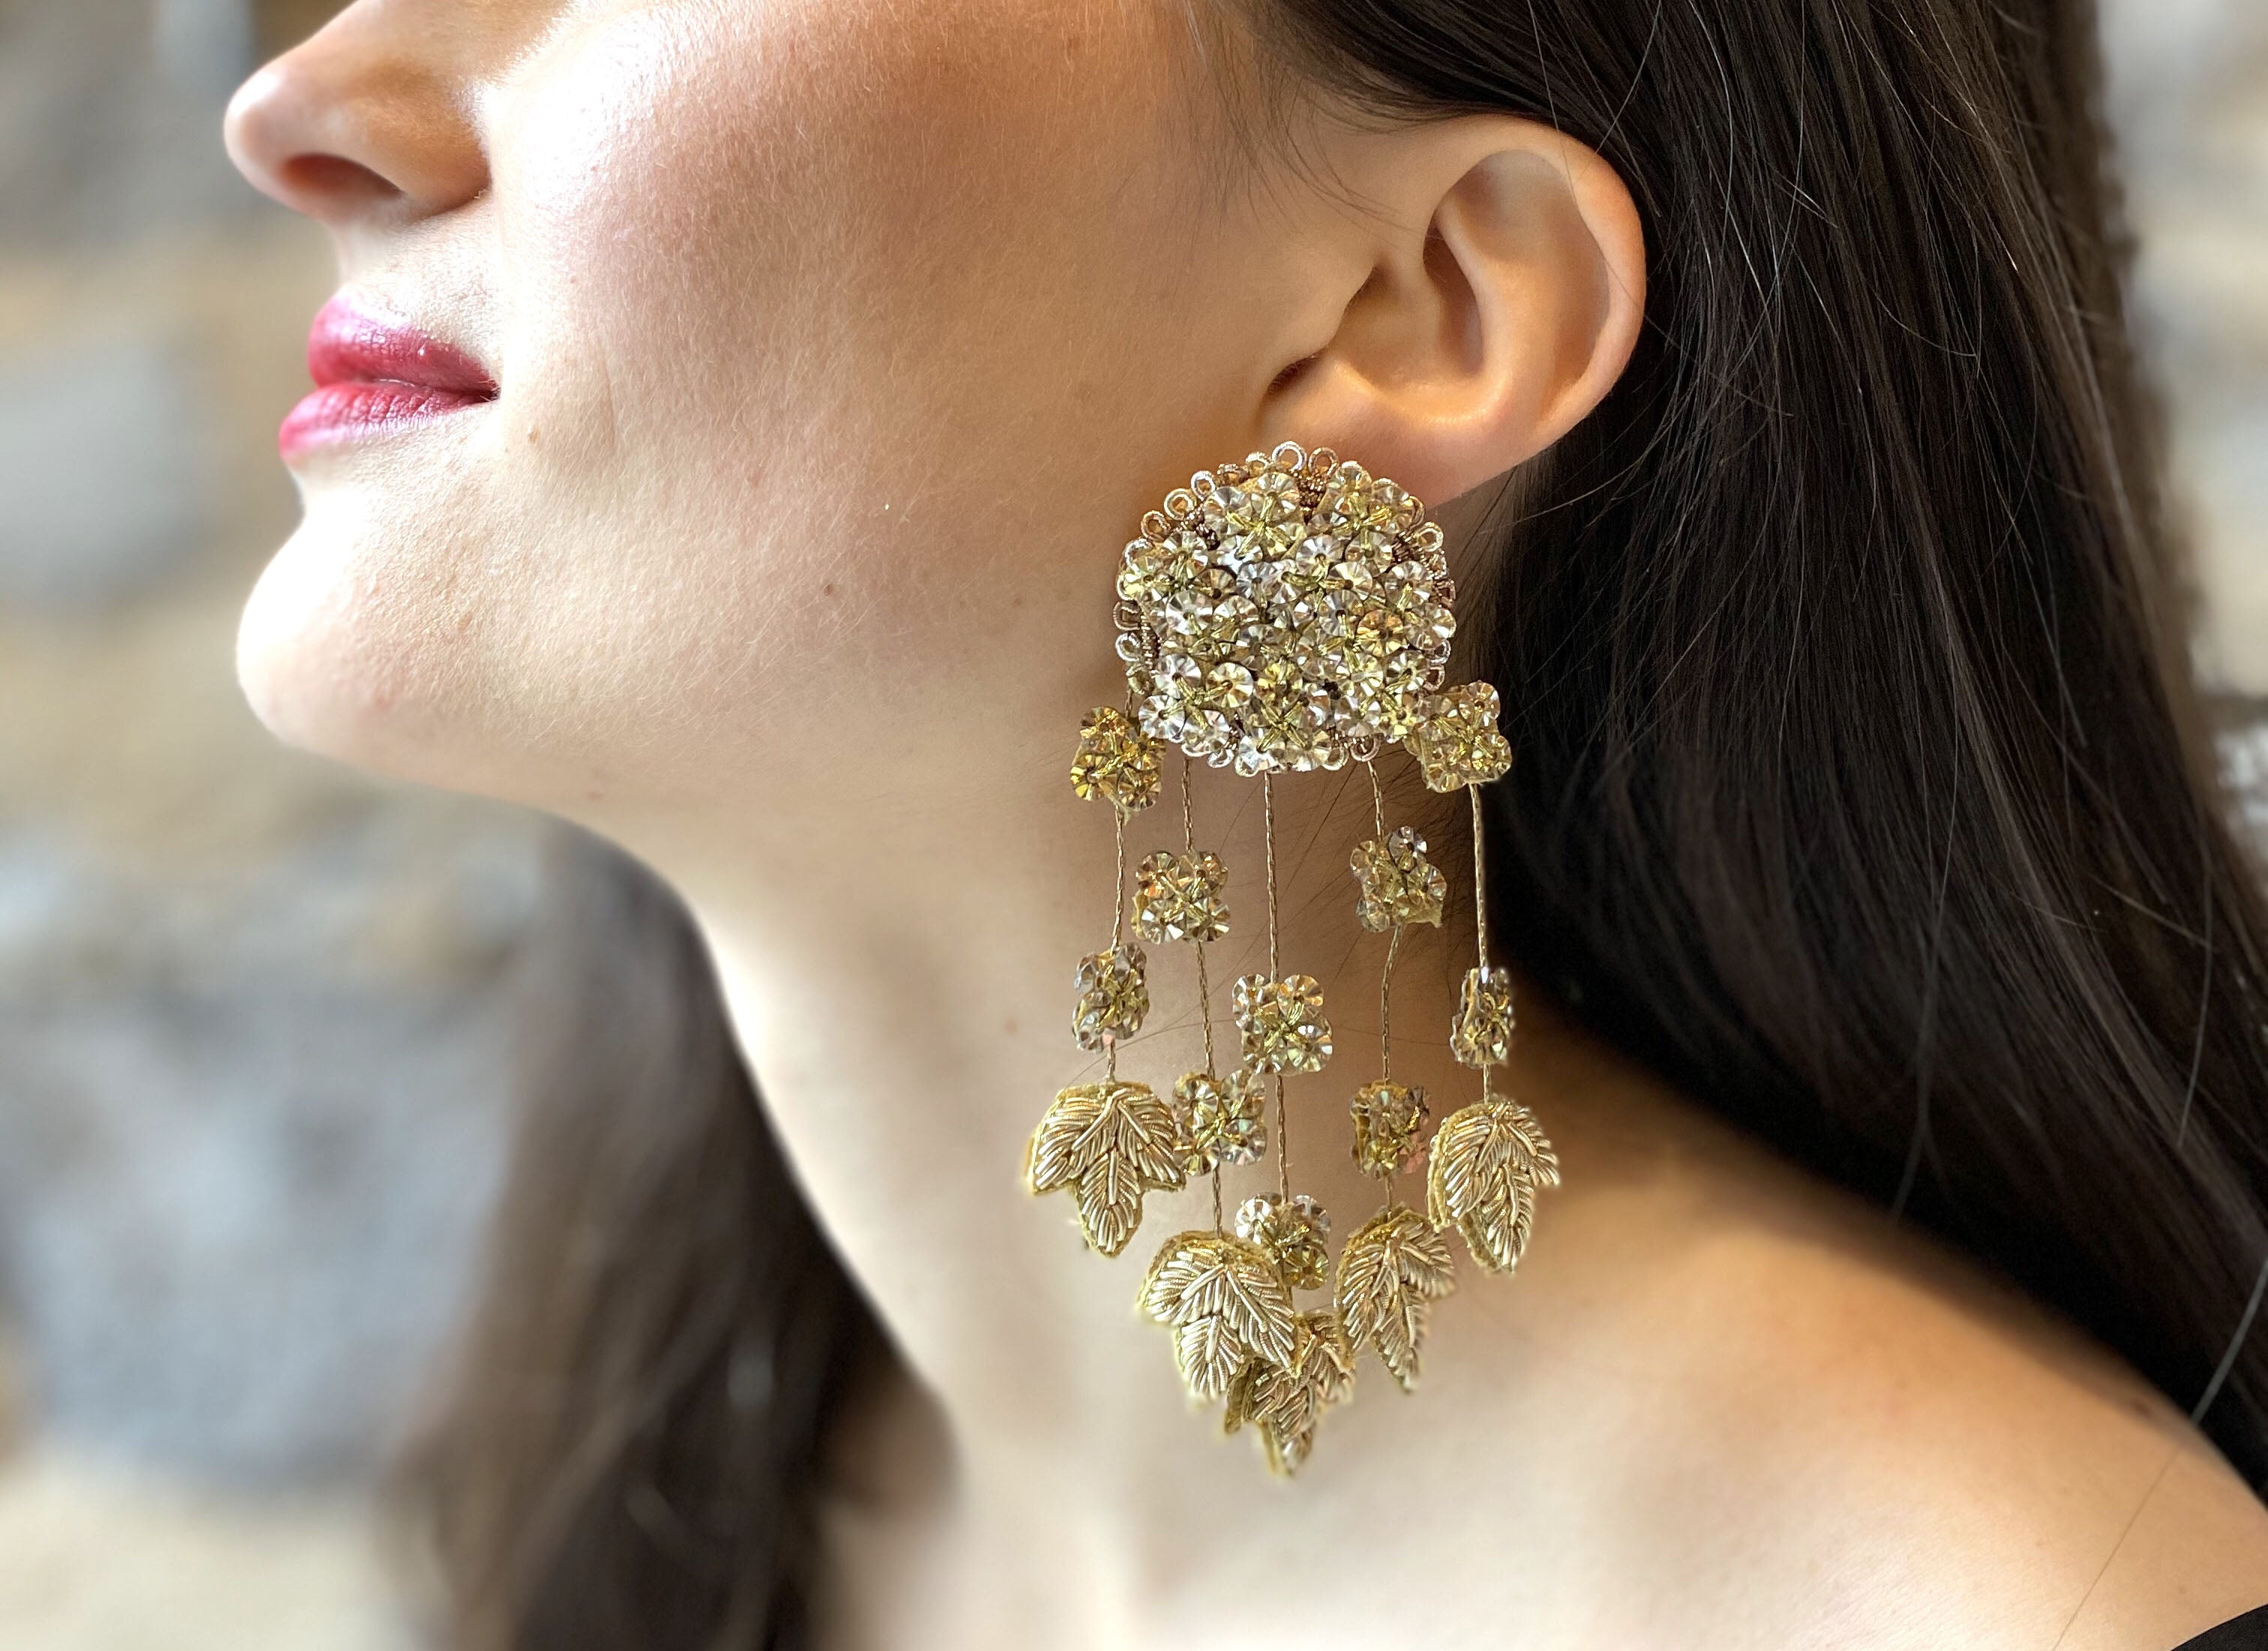 Boucles D'Oreilles Diwali // The Diwali Earring